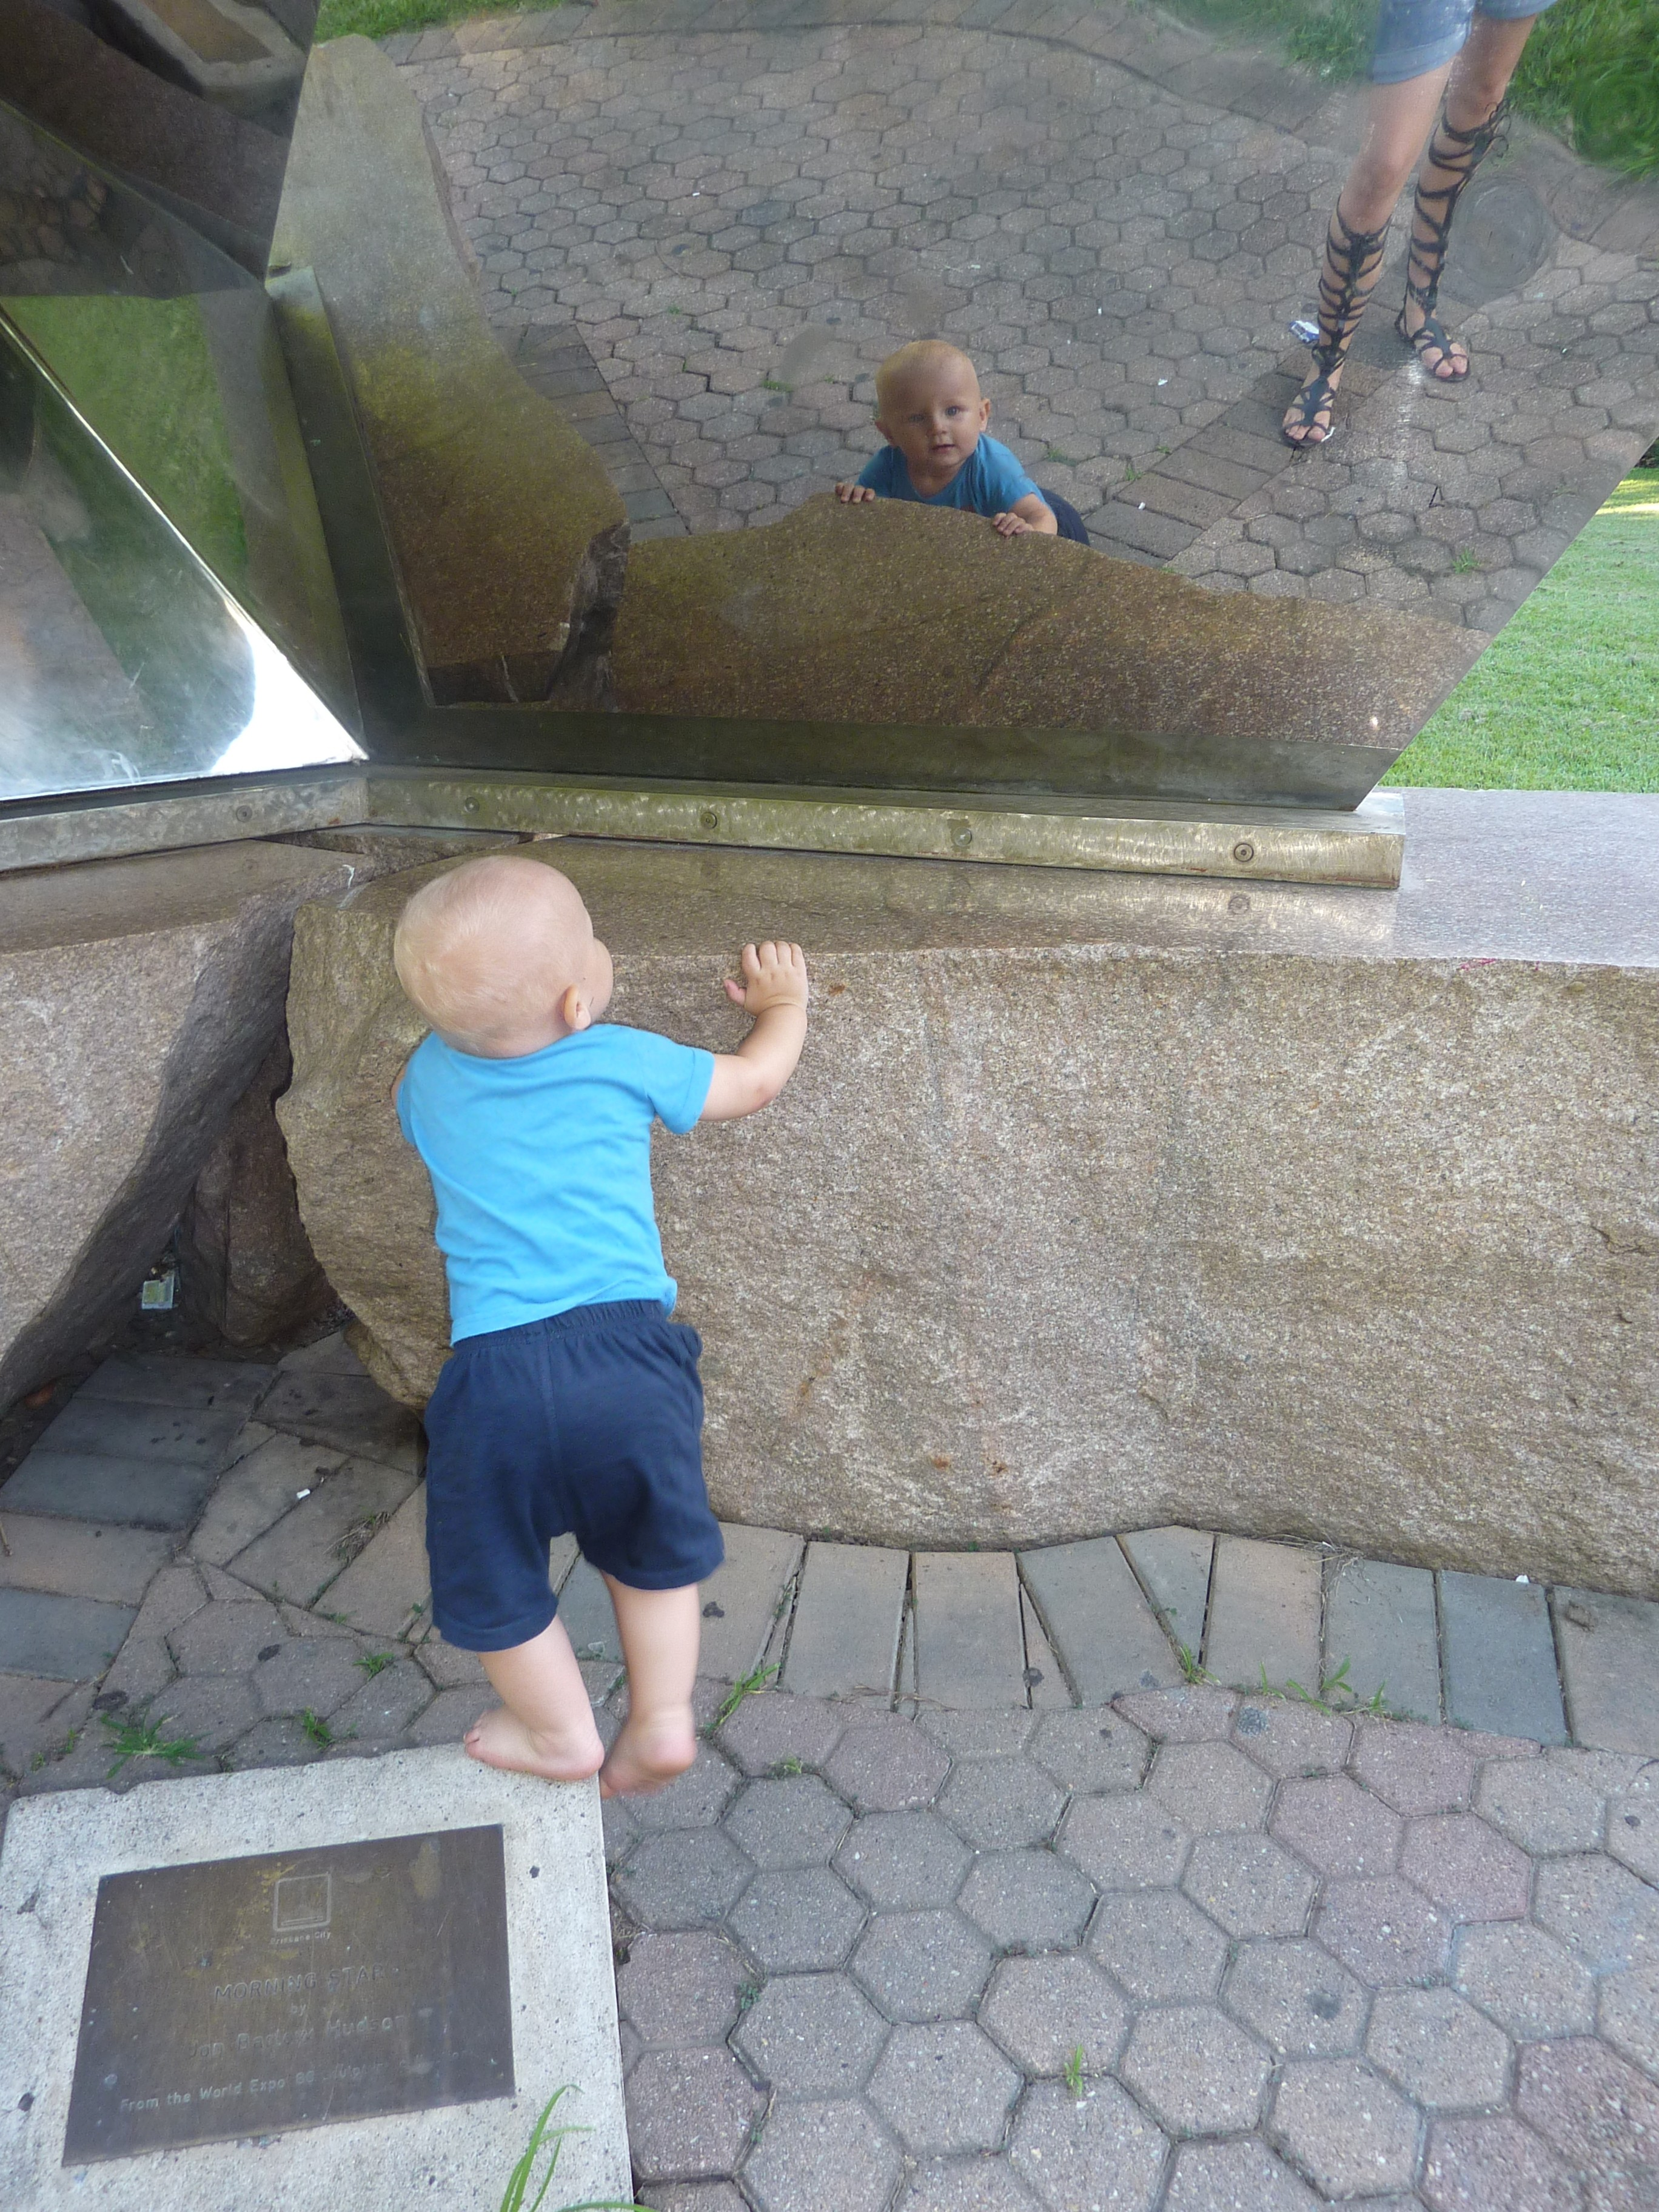 Xander looks at his reflection in the Morning Star sculpture